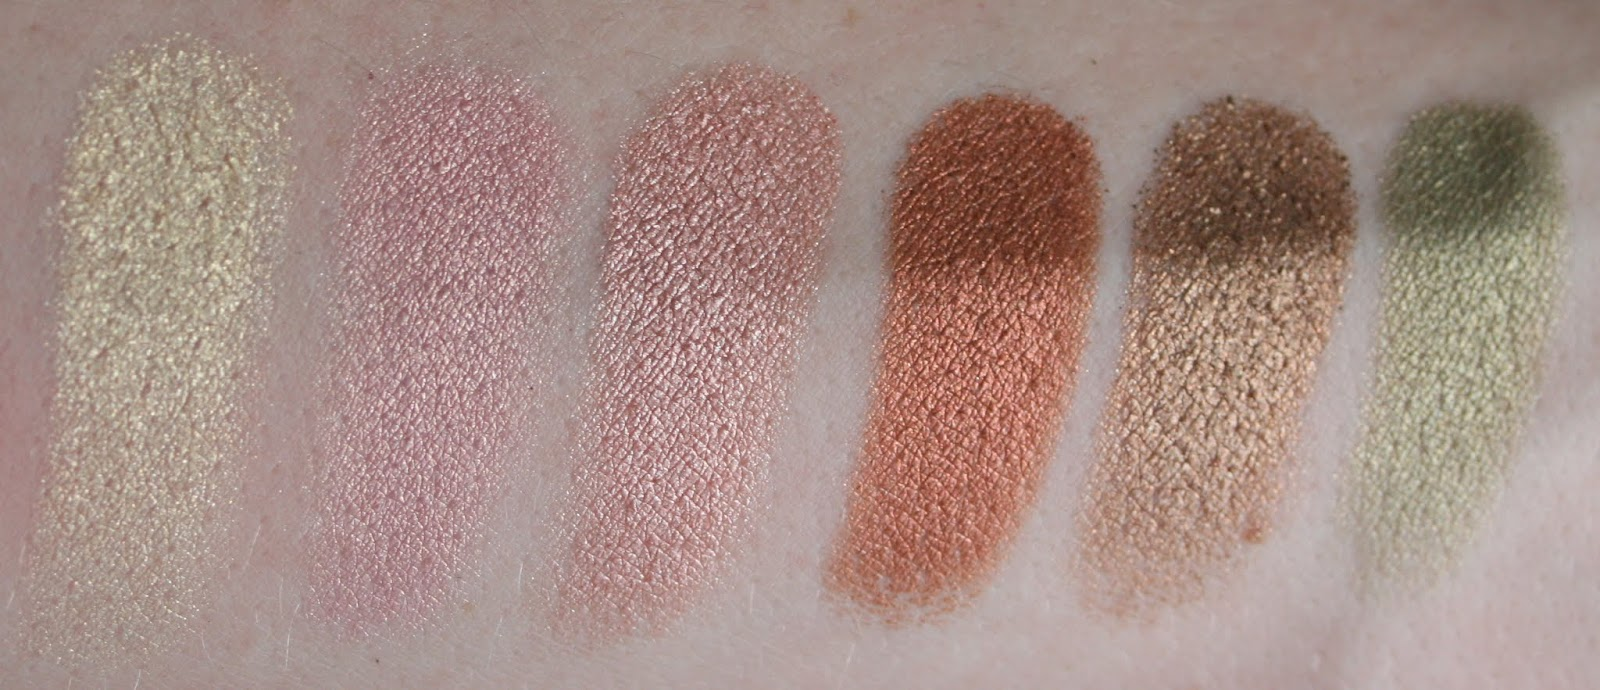 Sleek Original palette swatches